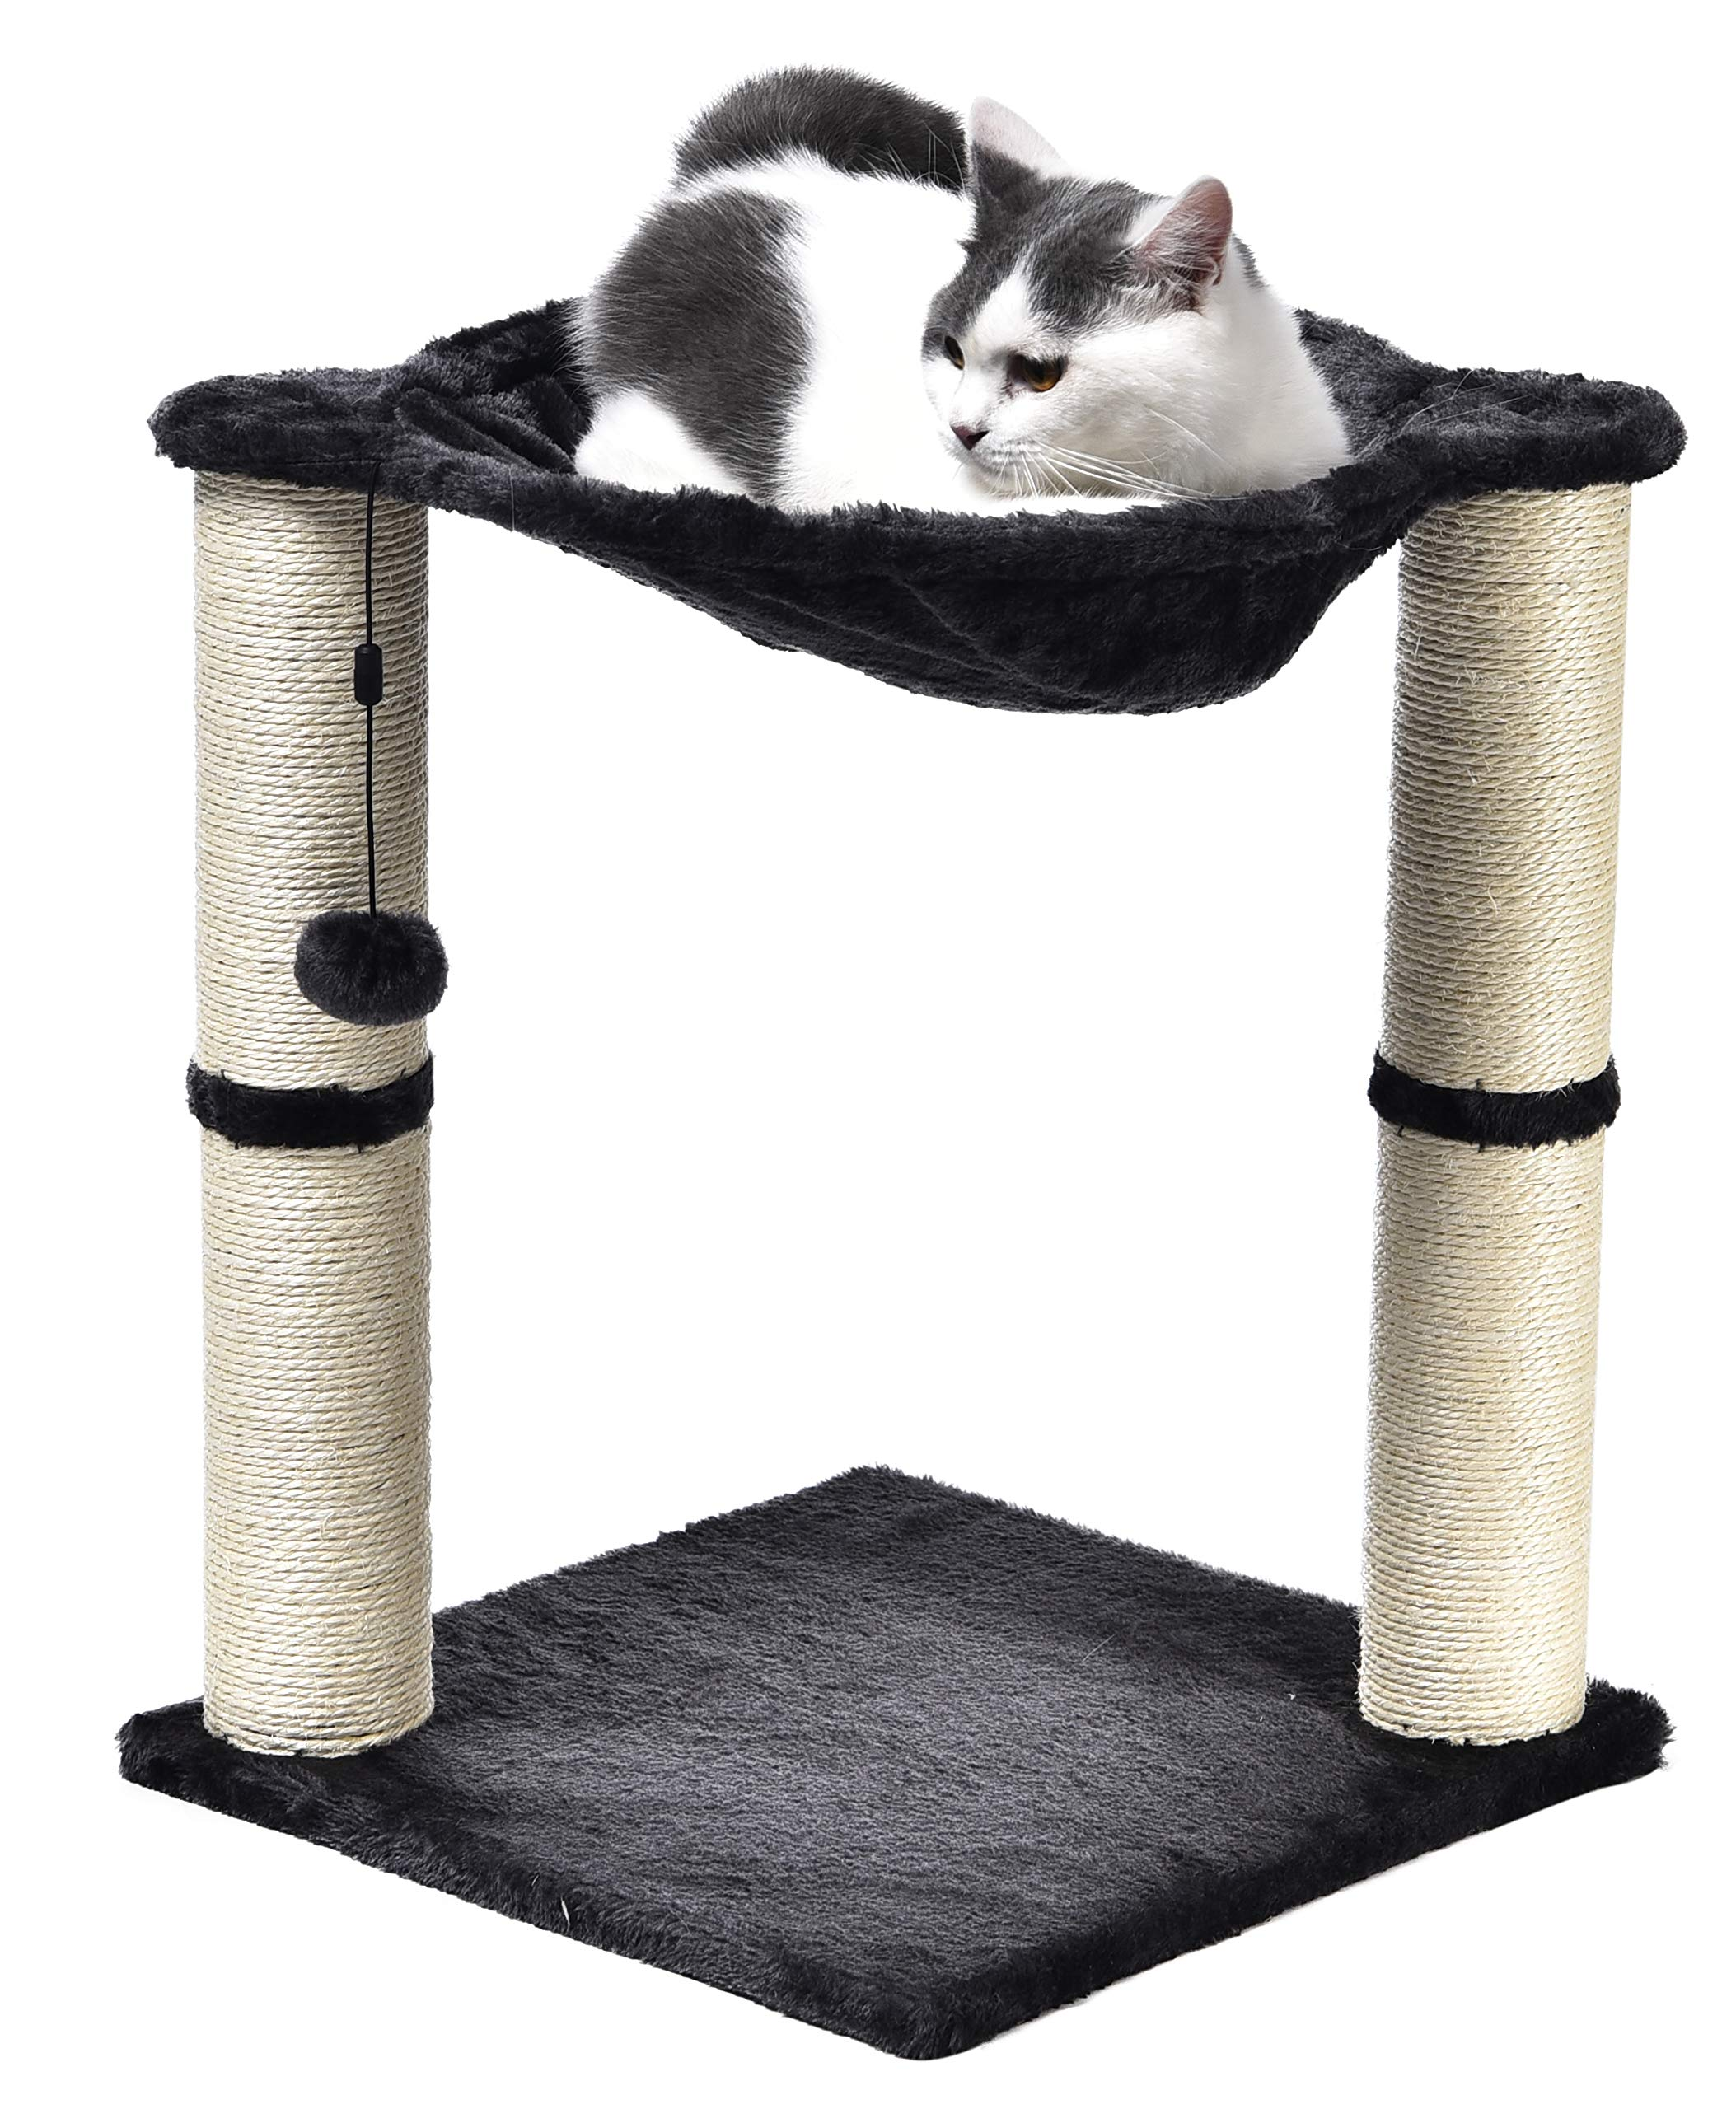 AmazonBasics Cat Condo Tree Tower With Hammock Bed And Scratching Post - 16 x 20 x 16 Inches, Grey by AmazonBasics